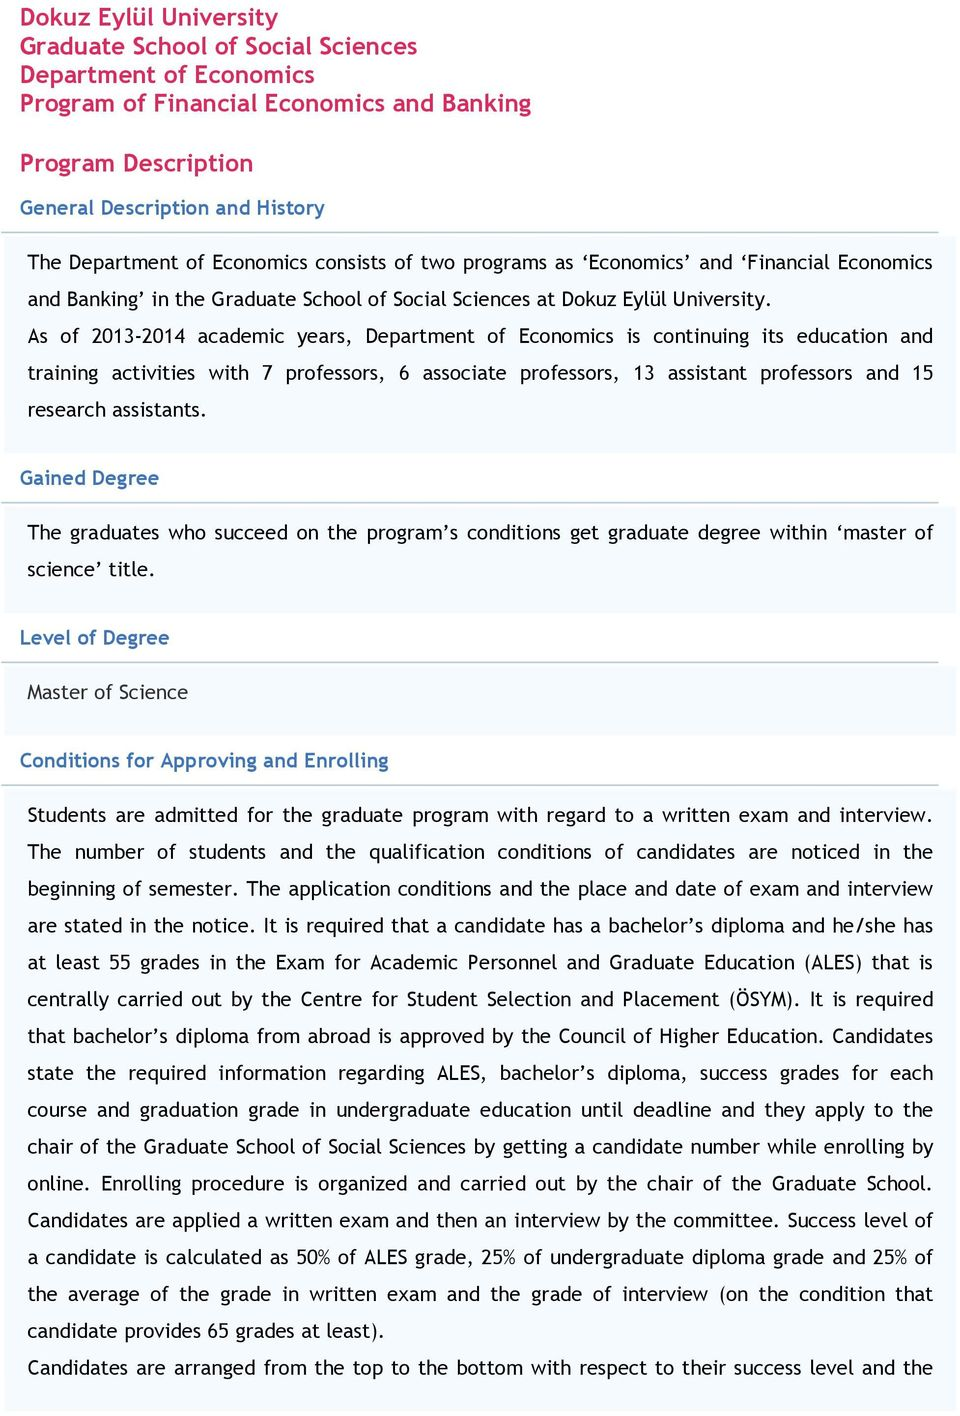 As of 2013-2014 academic years, Department of Economics is continuing its education and training activities with 7 professors, 6 associate professors, 13 assistant professors and 15 research